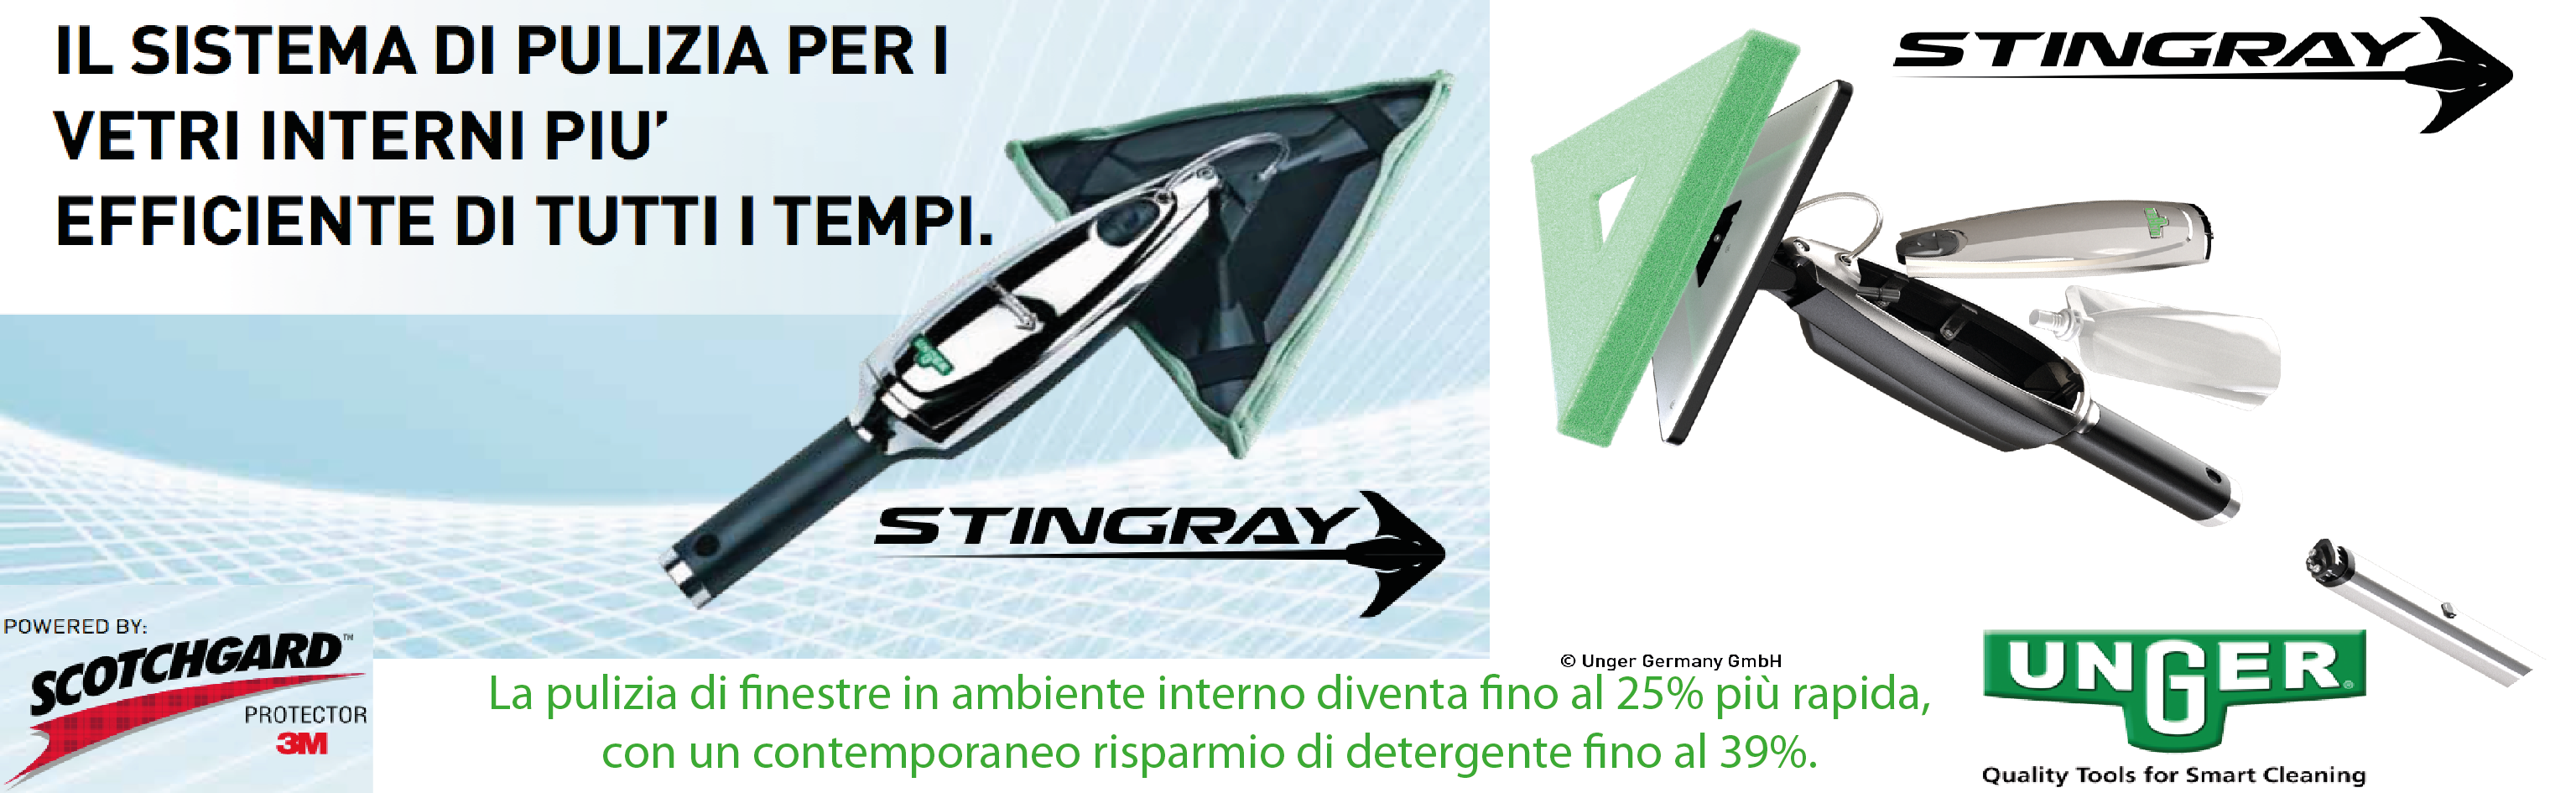 stingray-shop-unger.png